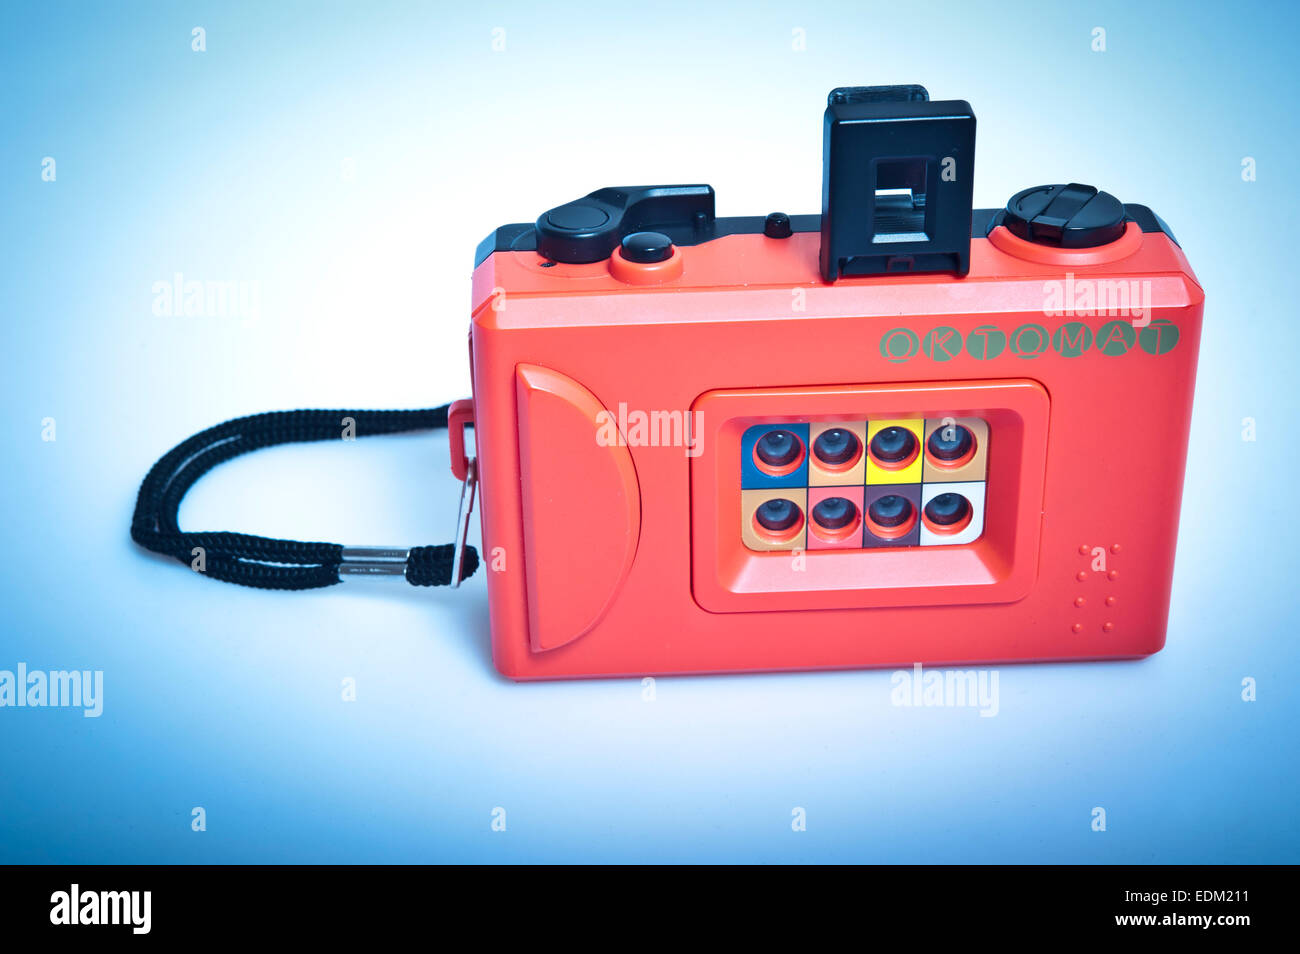 Appareil photo Lomography Oktomat Photo Stock